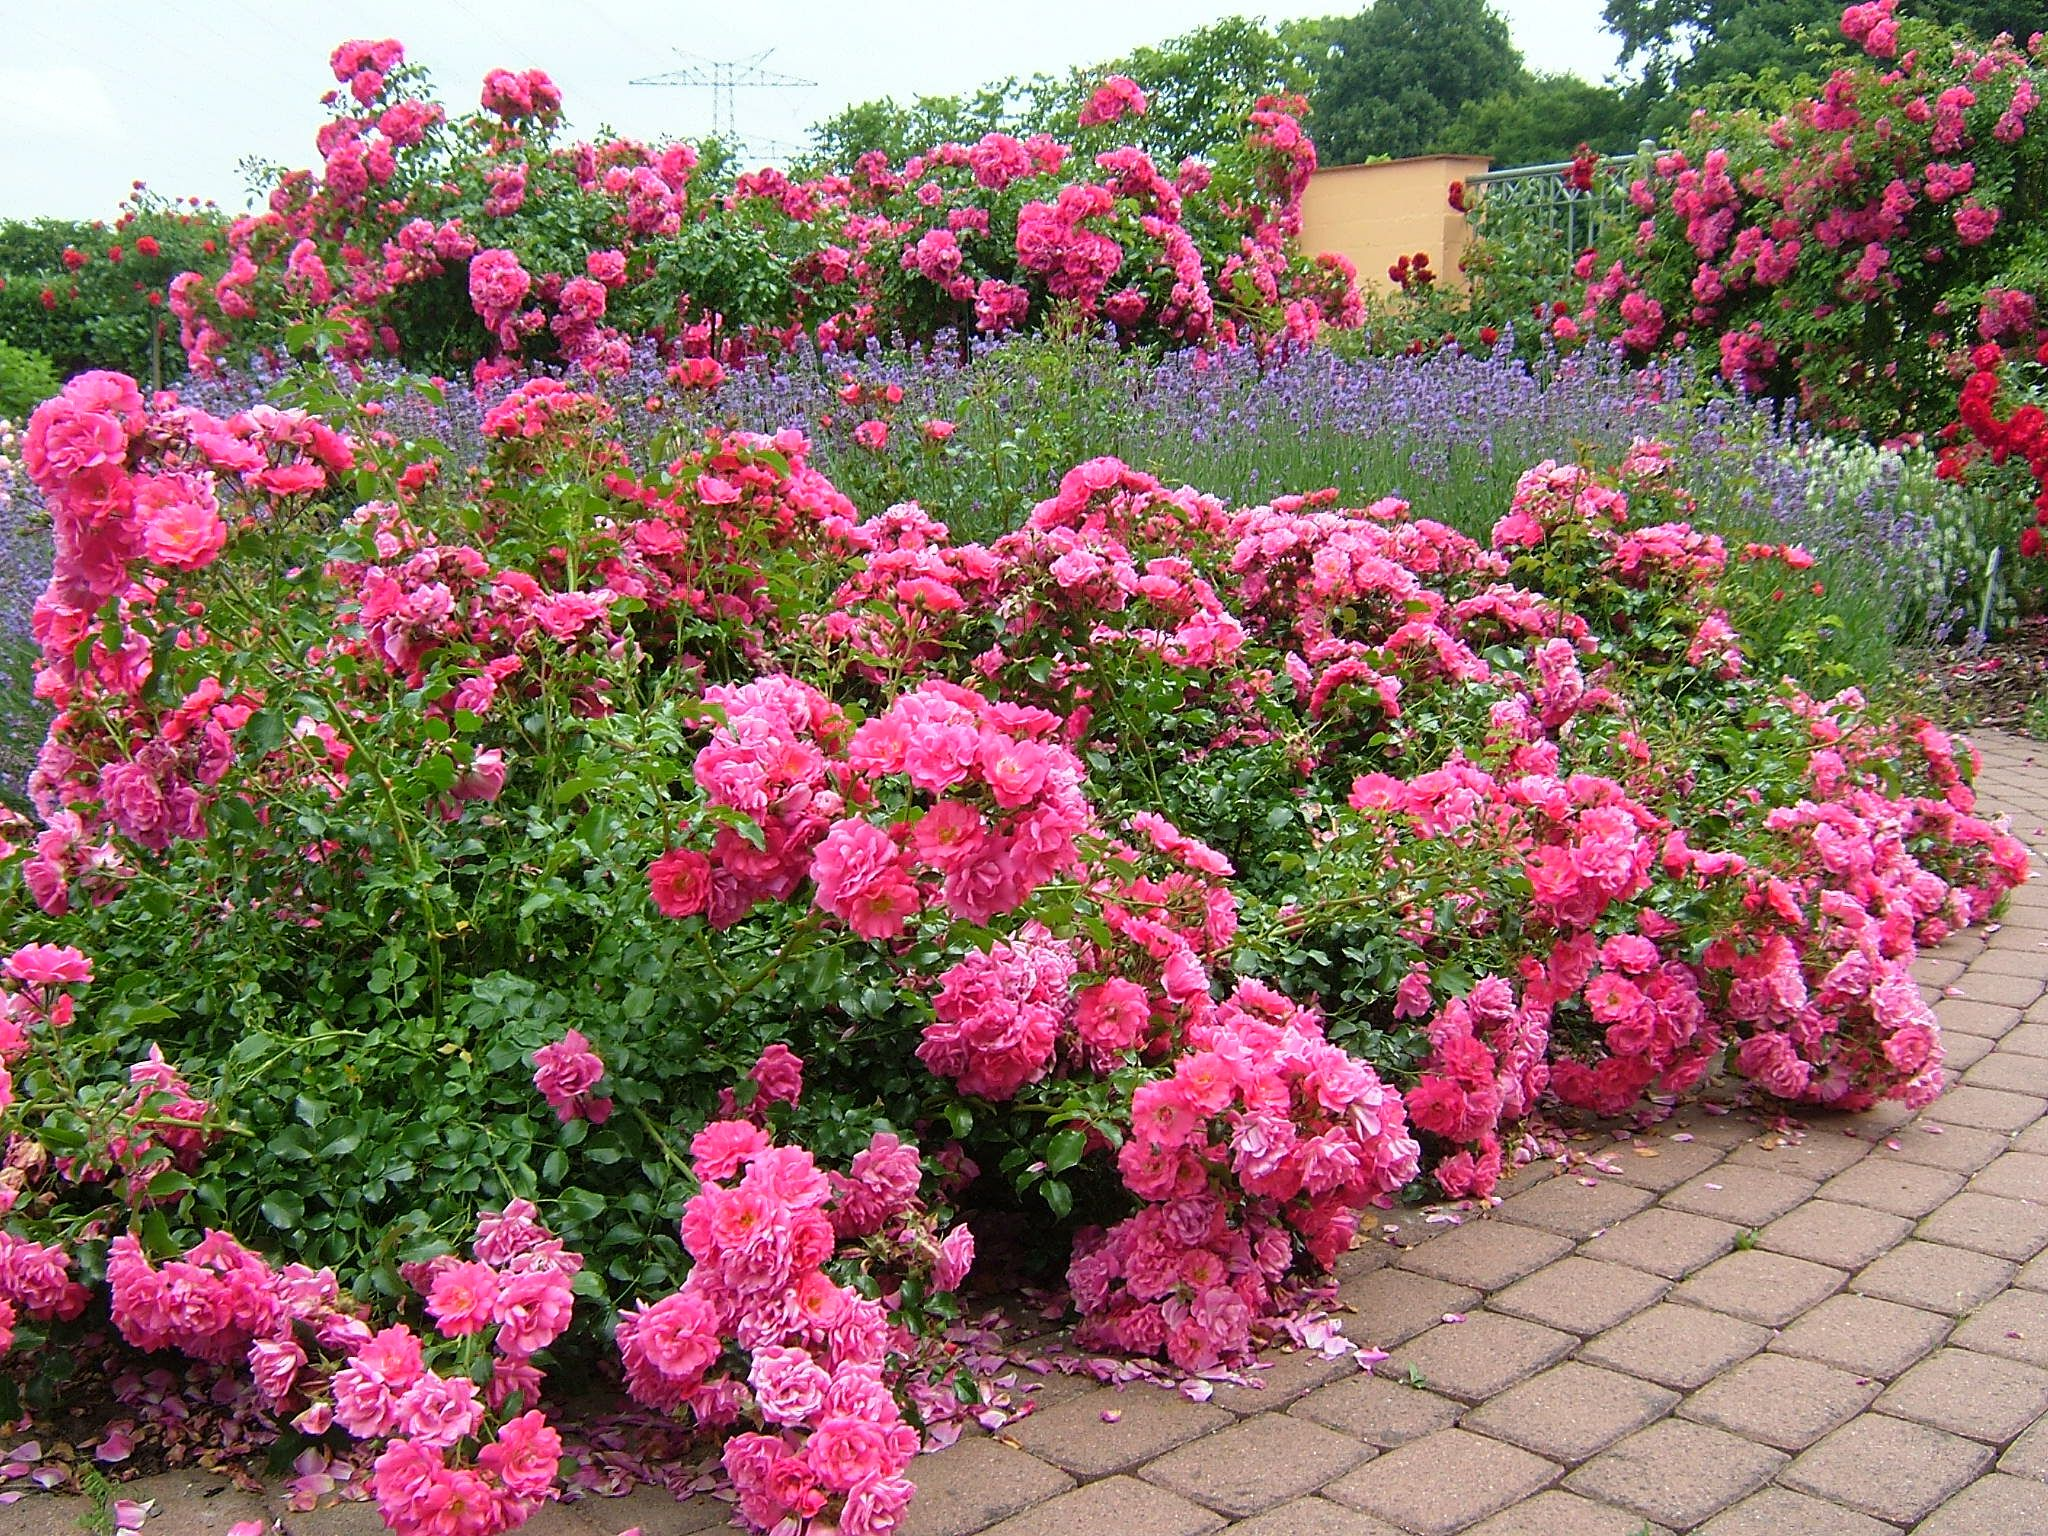 Flower Carpet Pink Groundcover Rose With Lavender Along Walkway The